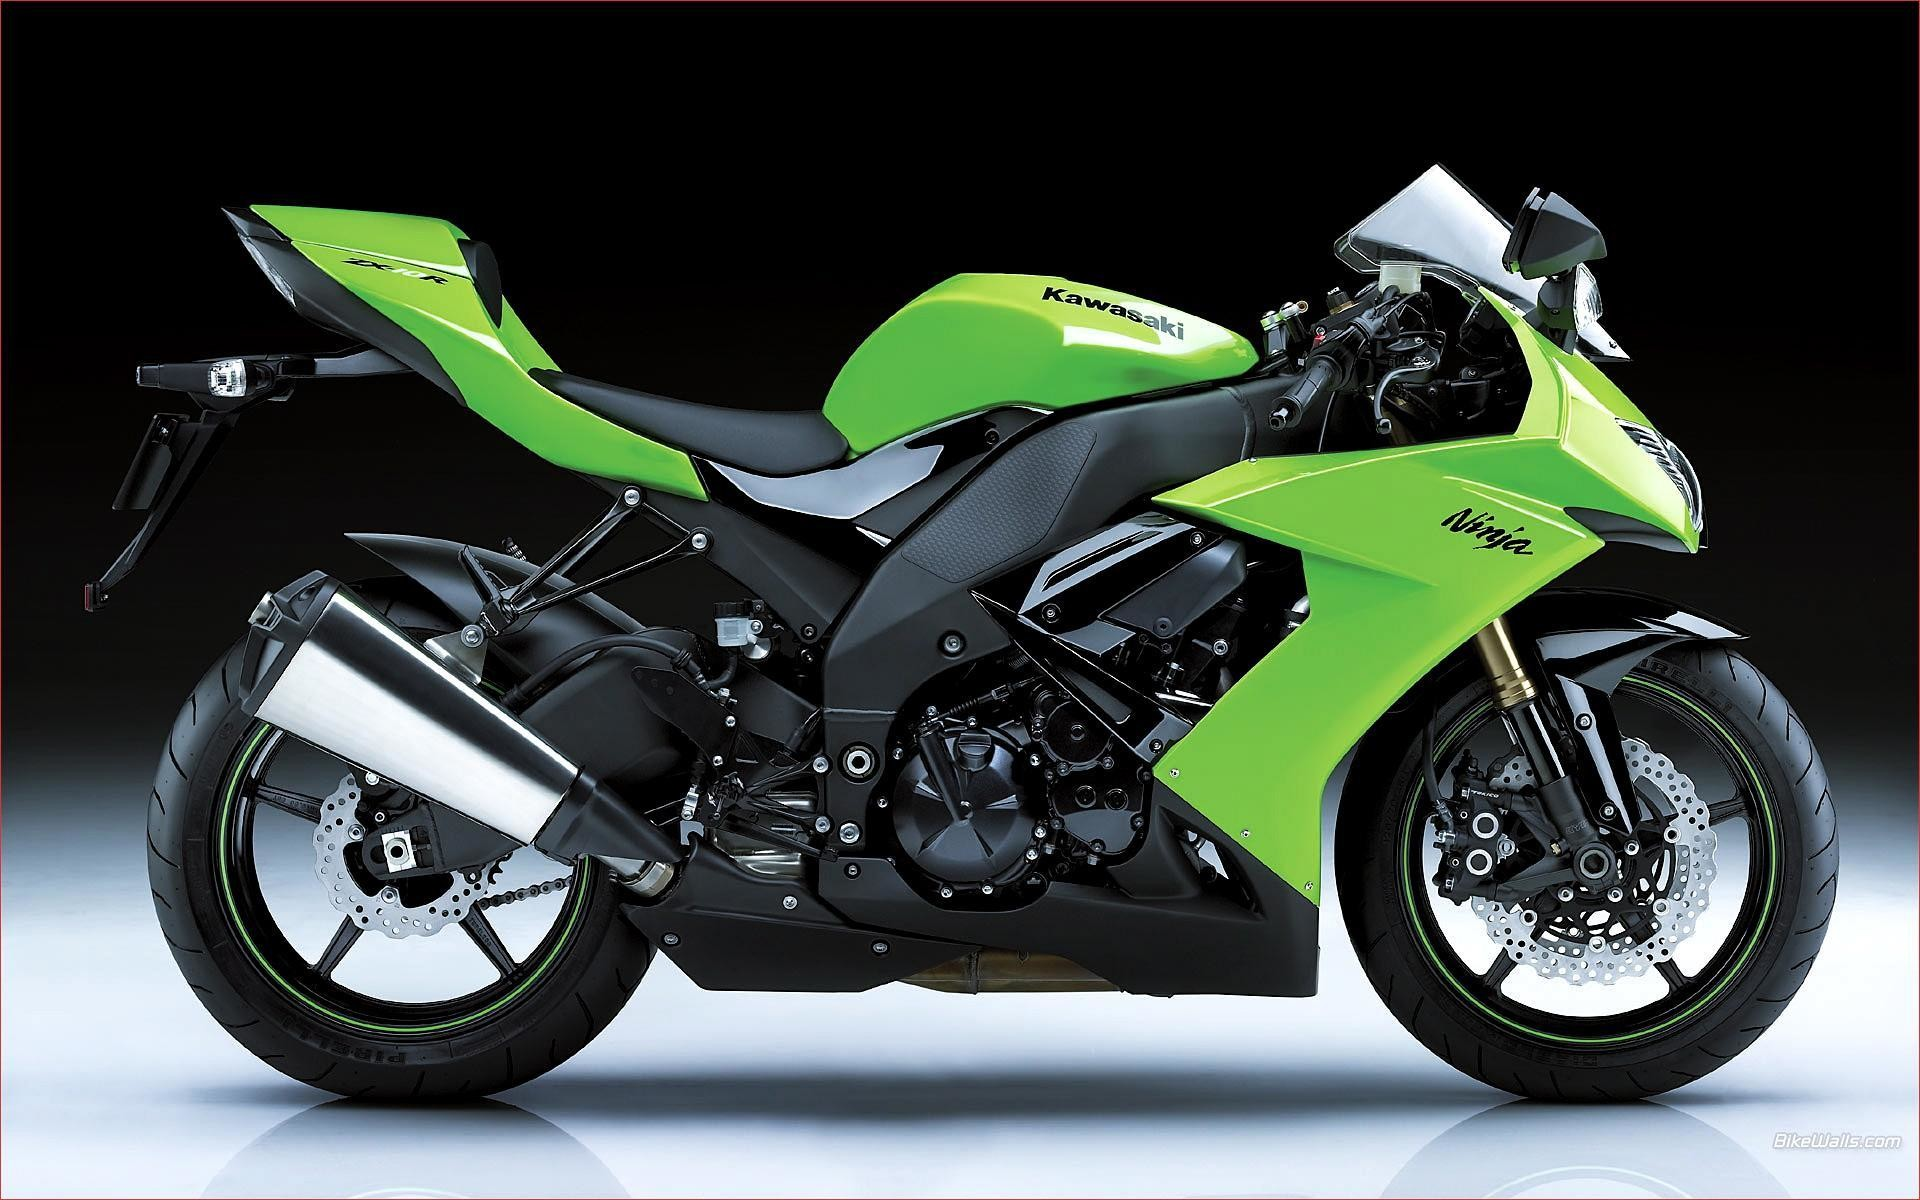 2048x1367 Wallpaper Of Kawasaki Ninja 300